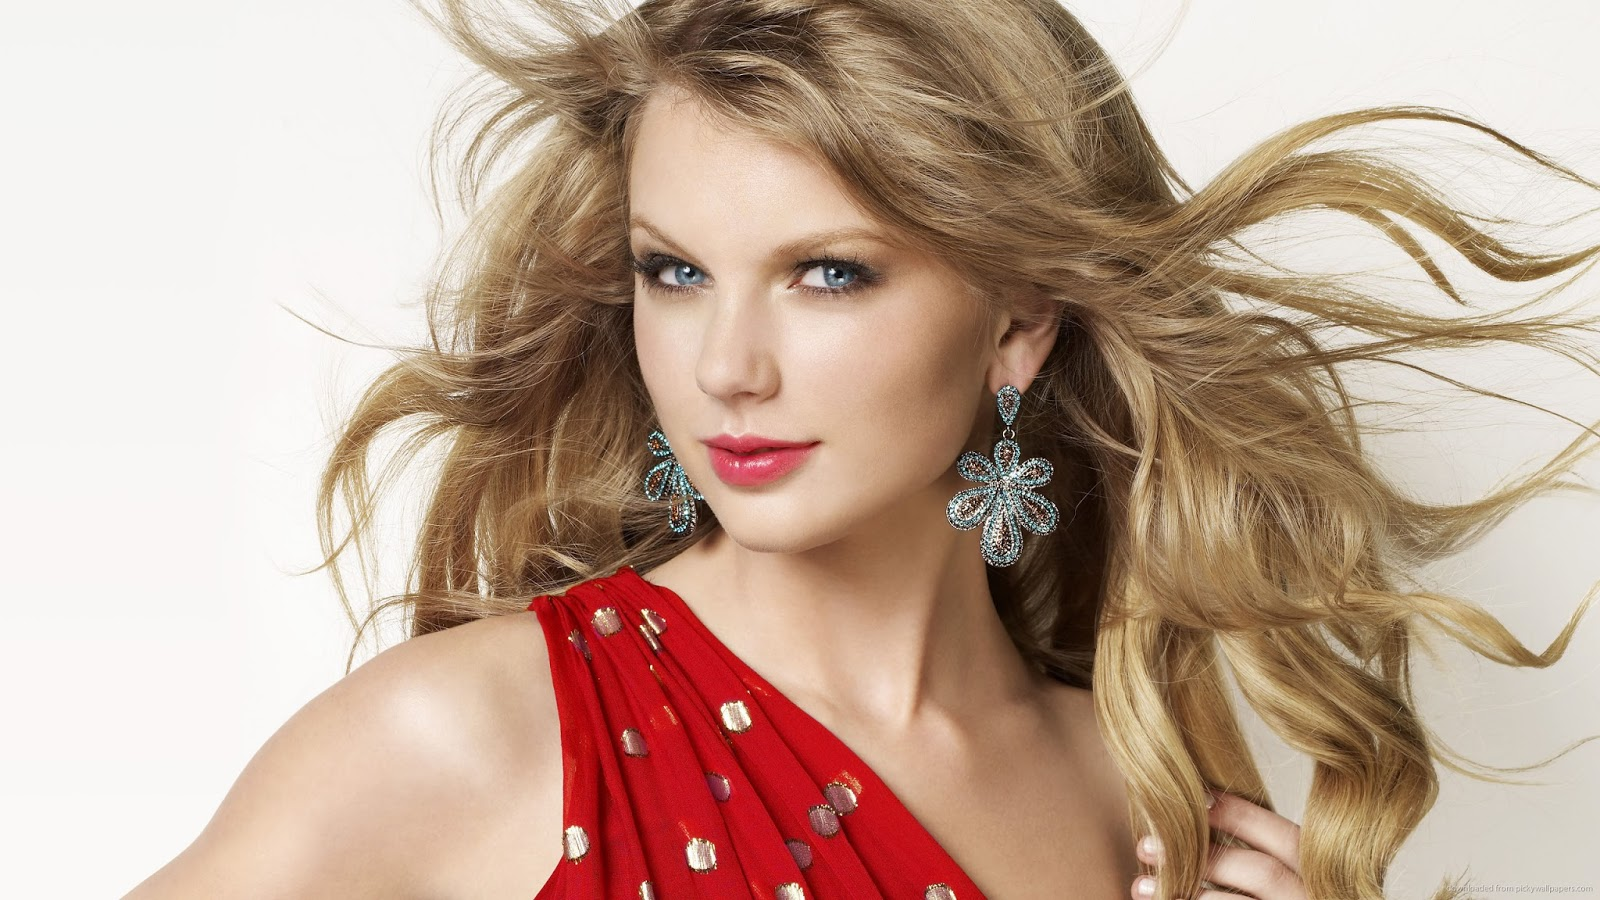 HD Wallpapers Taylor Swift HD Wallpaper 1600x900